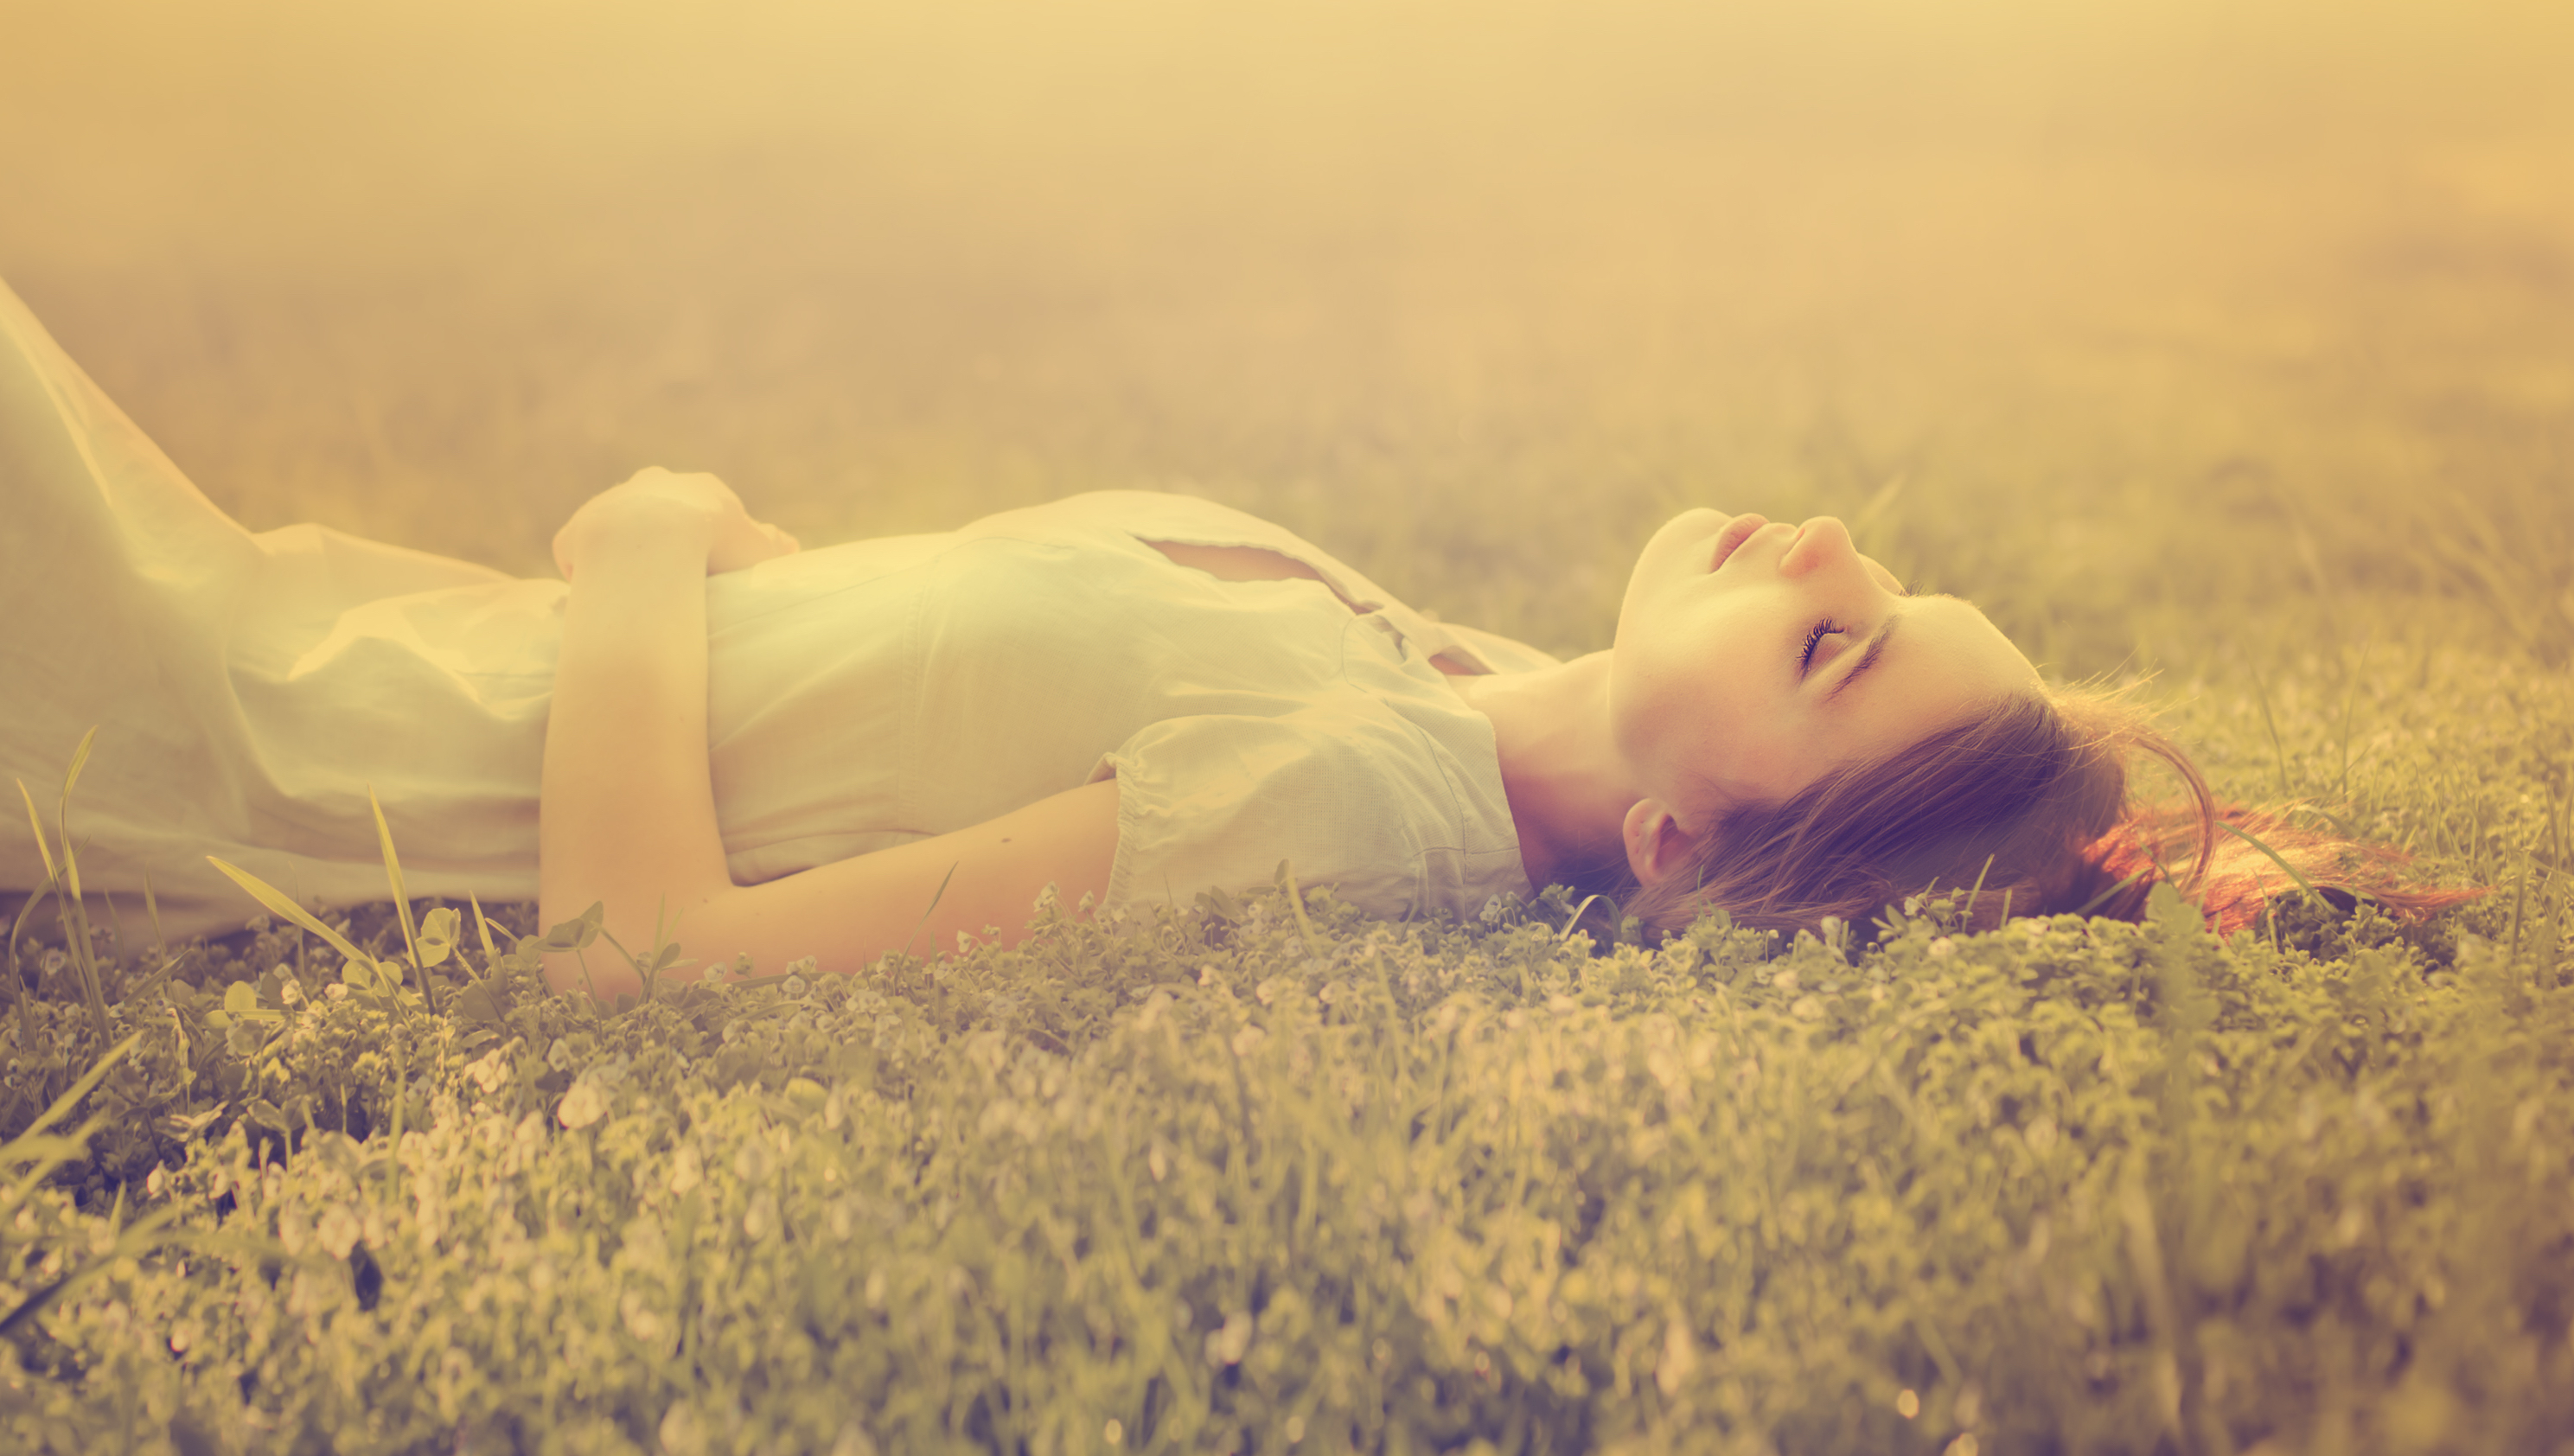 Lucid Dreaming Associated With More Pronounced Self